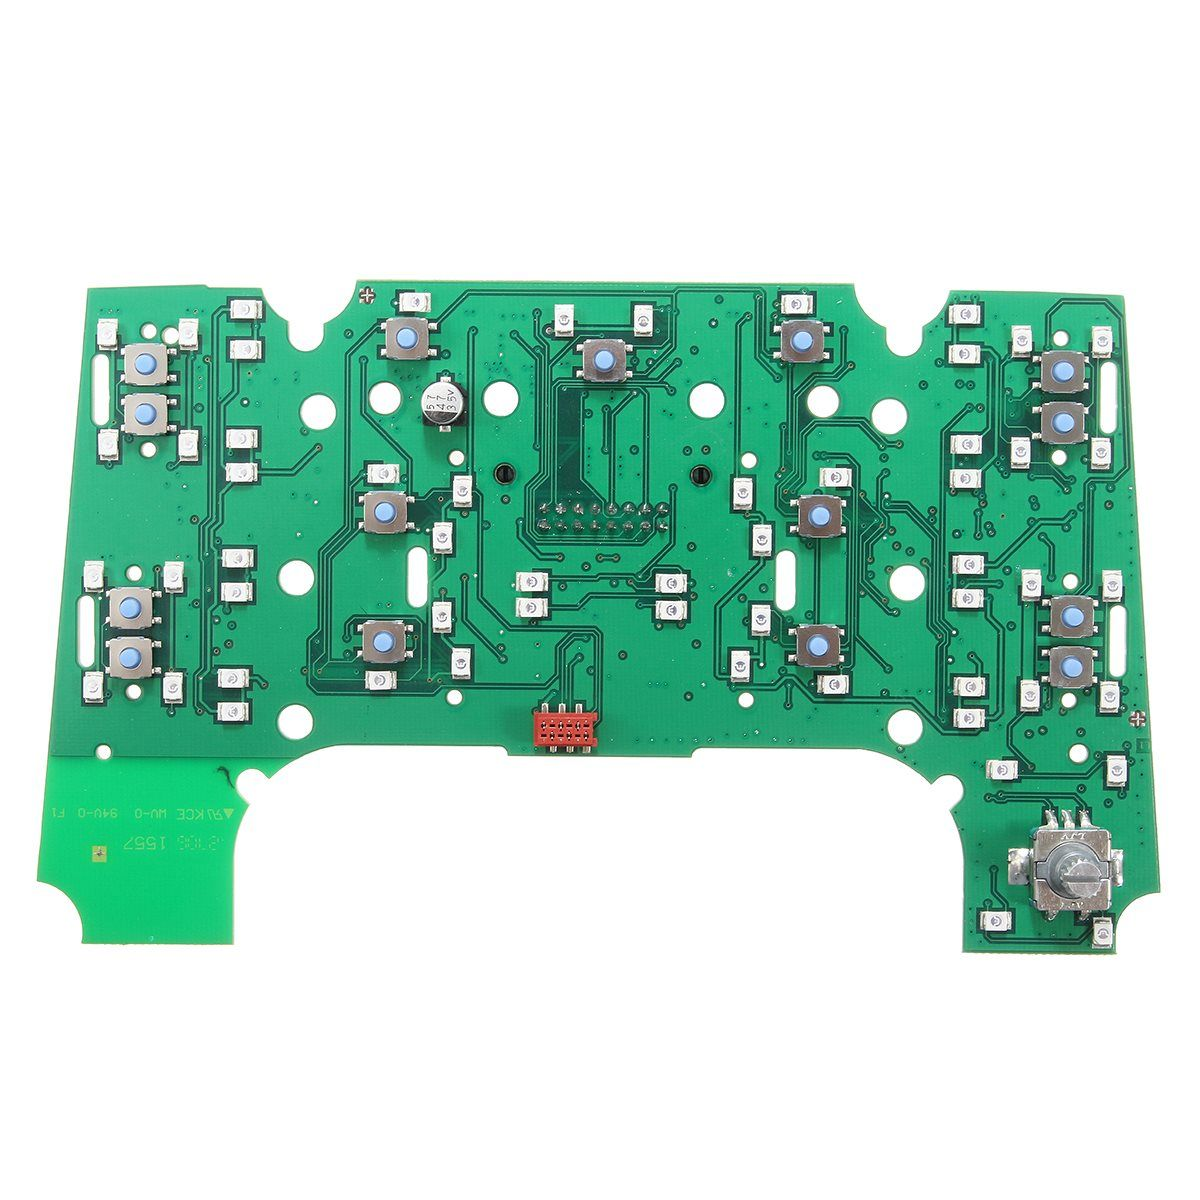 New 2G MMI Multimedia Interface Control Panel Circuit Board For Audi A8 A8L S8 2003 2004 2005 2006 PVC and Metal